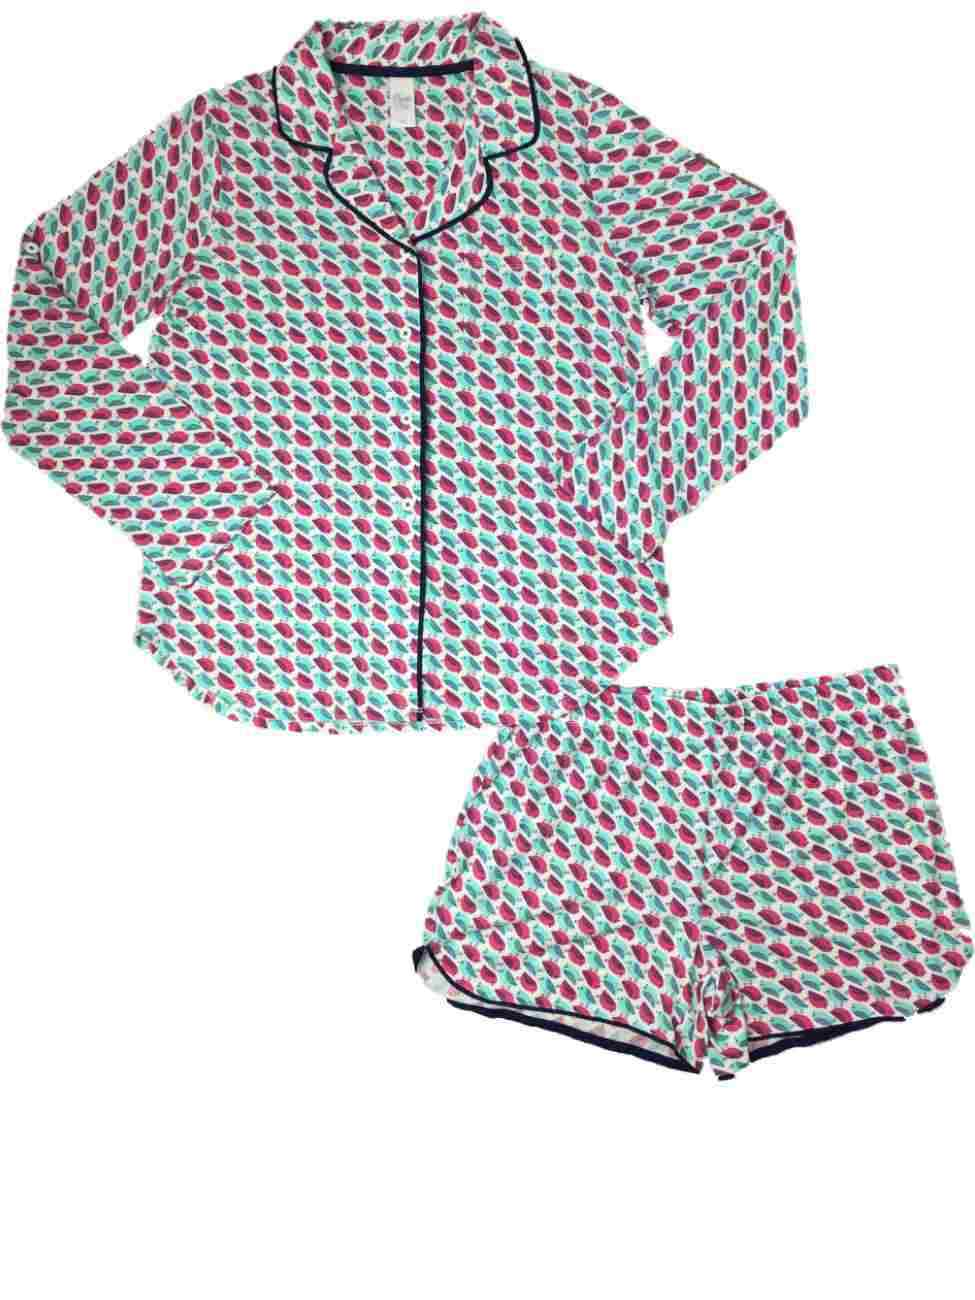 Womens Pink bluee & White Bird Pajamas Lightweight Birdie Short Sleep Set